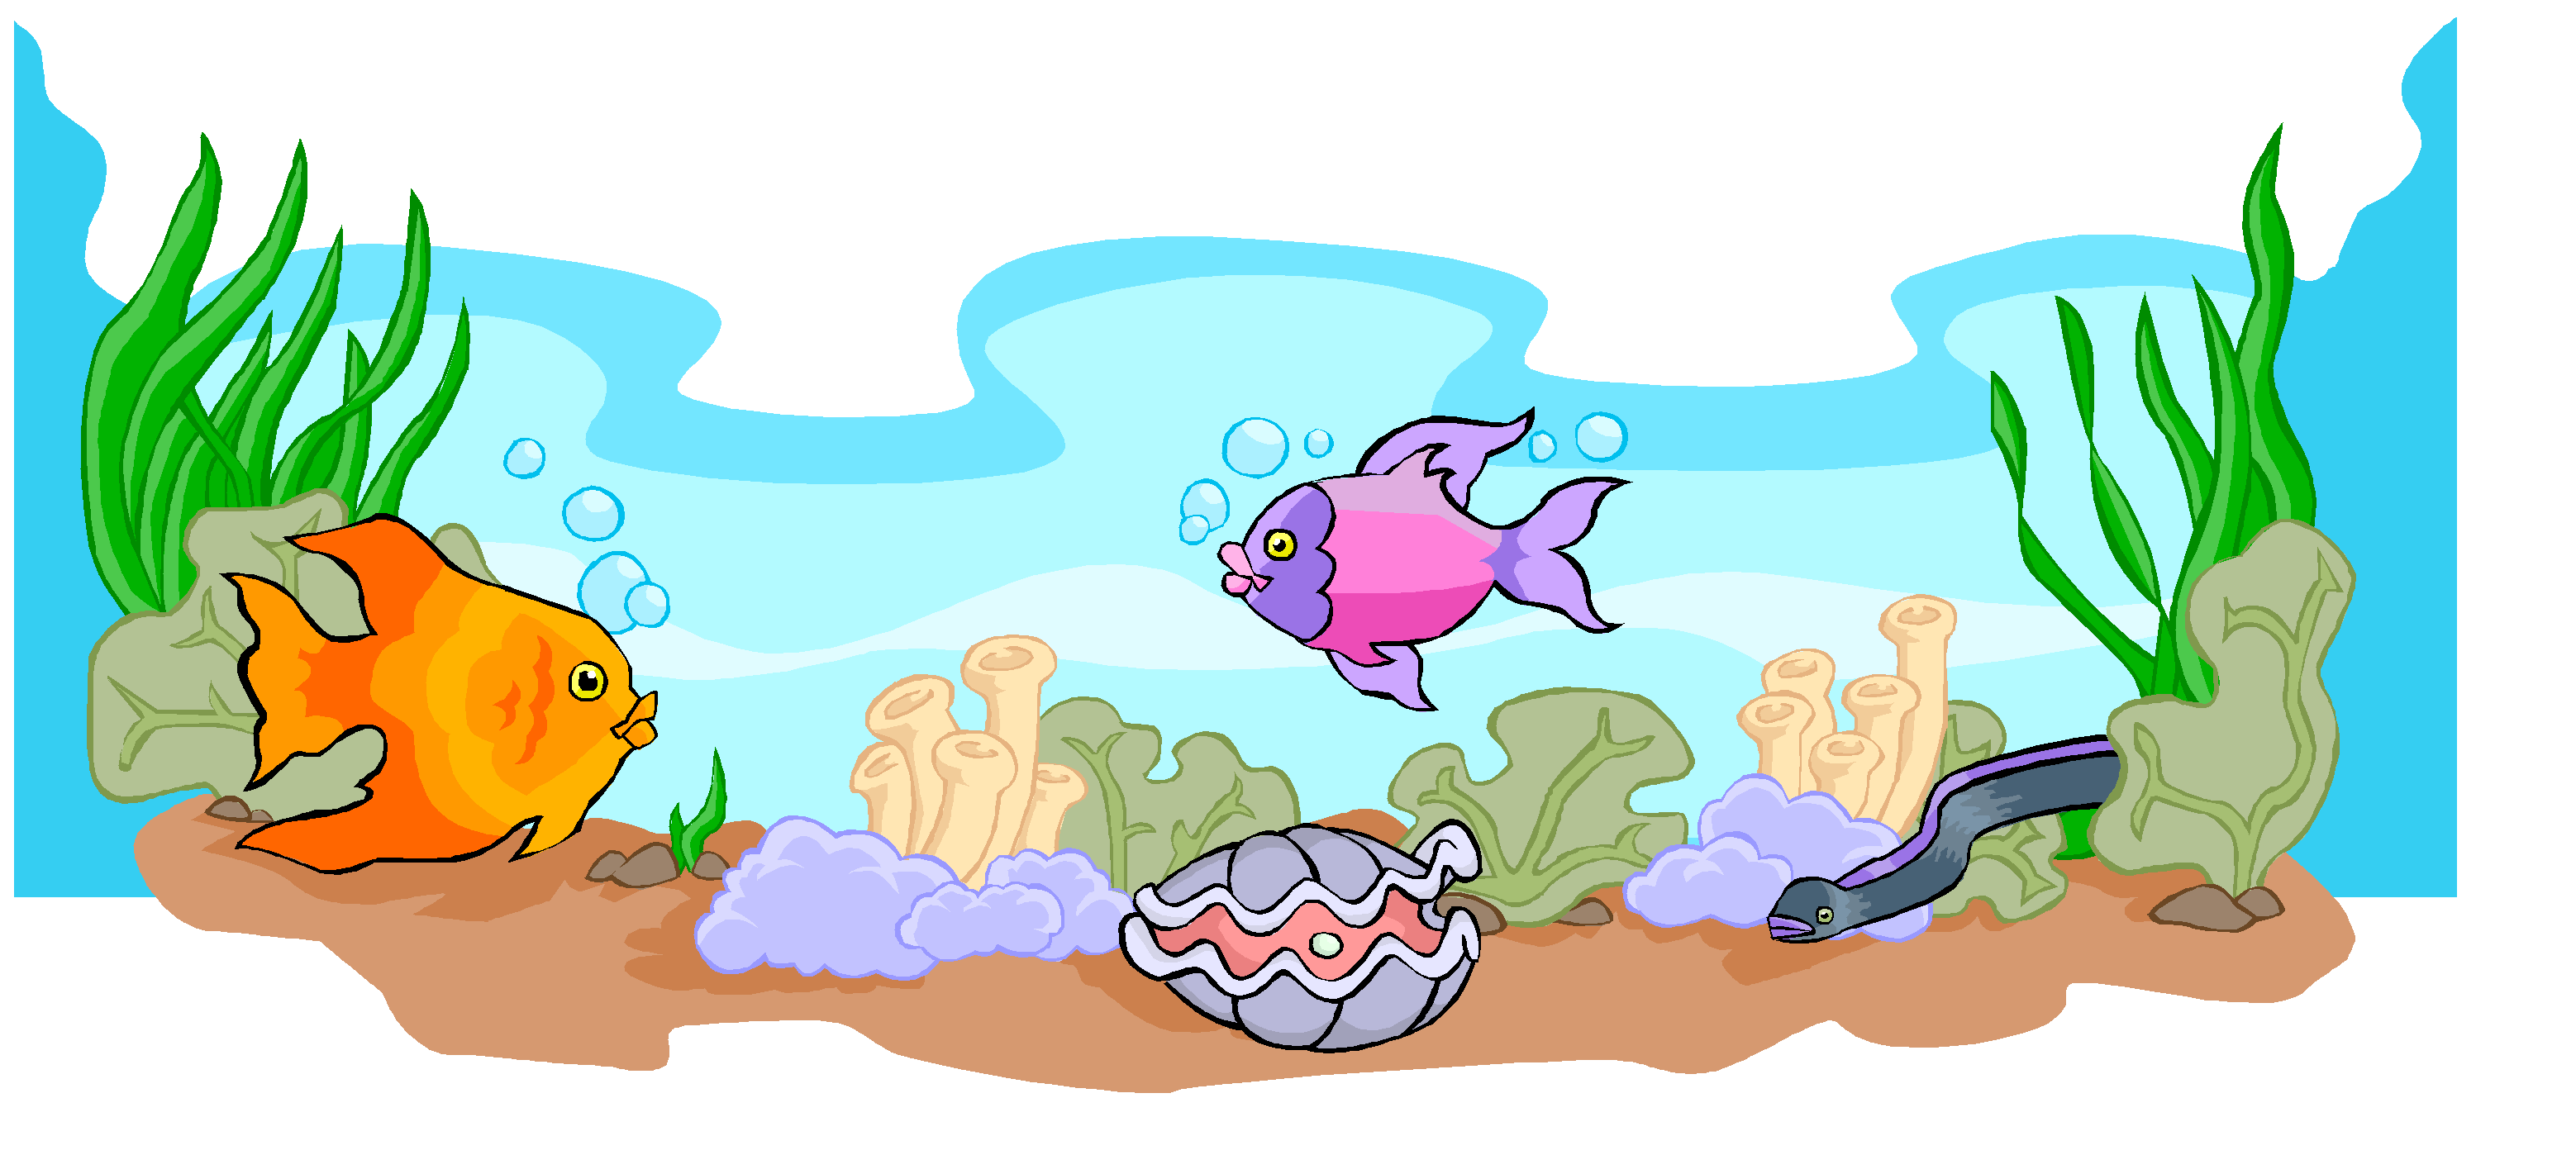 Fish scene clipart banner transparent 28+ Collection of Ocean Ecosystem Clipart | High quality, free ... banner transparent